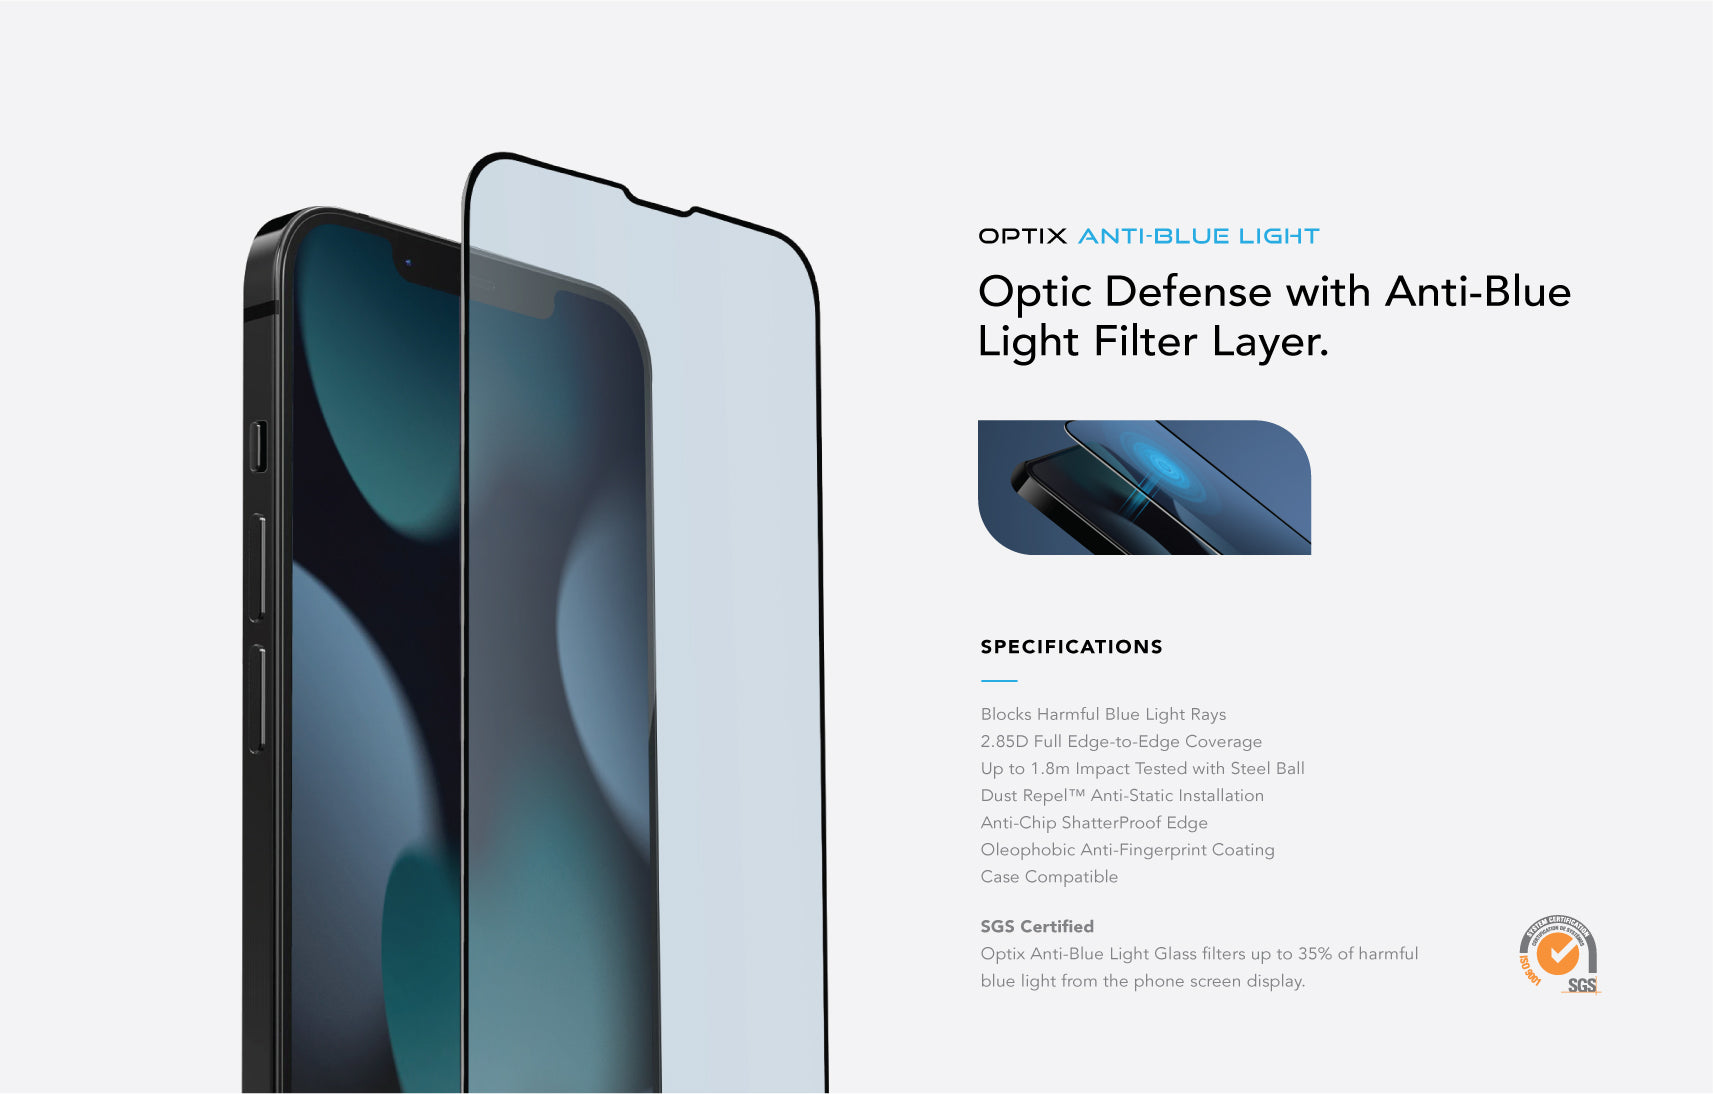 UNIQ Optix Anti-Blue Light 9H Tempered Glass Screen Protector for iPhone 13 and iPhone 13 Pro and iPhone 13 Pro Max